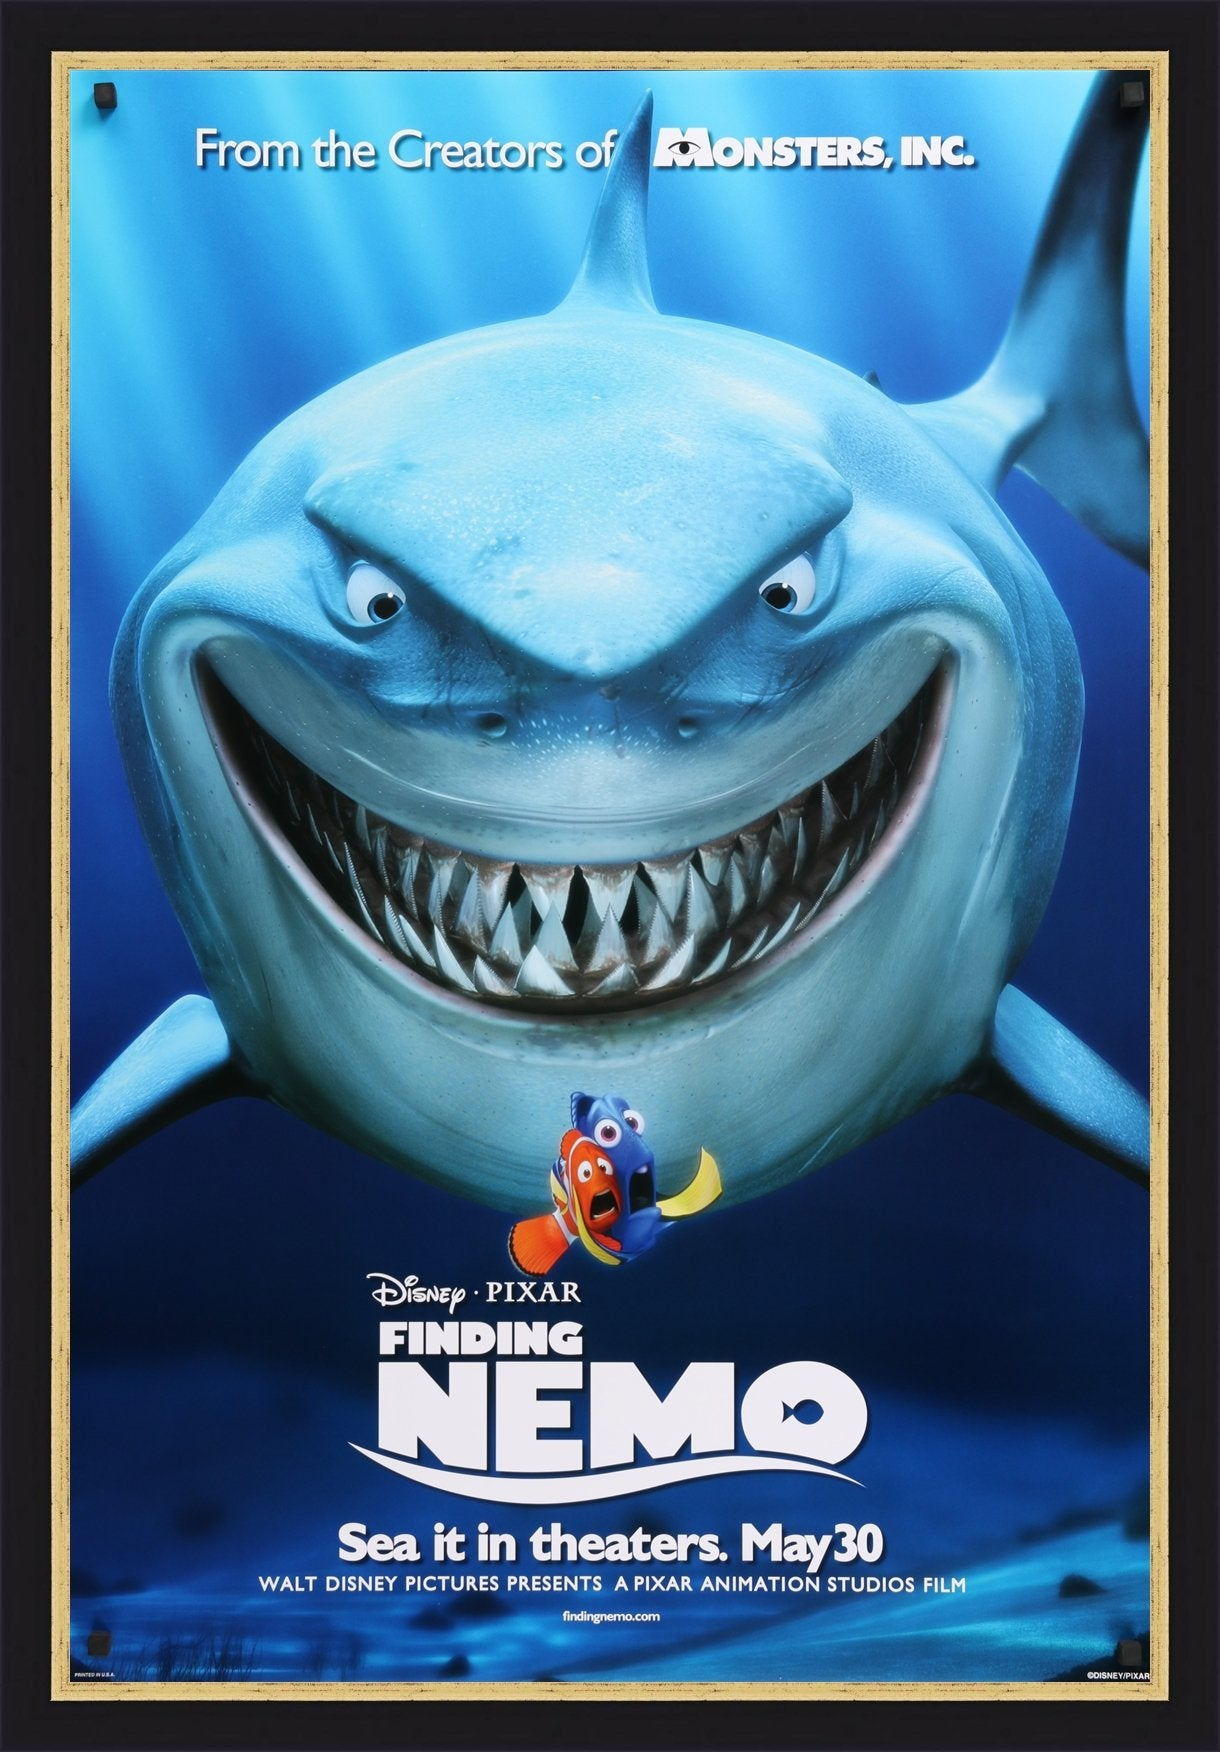 An original movie poster for the film Finding Nemo